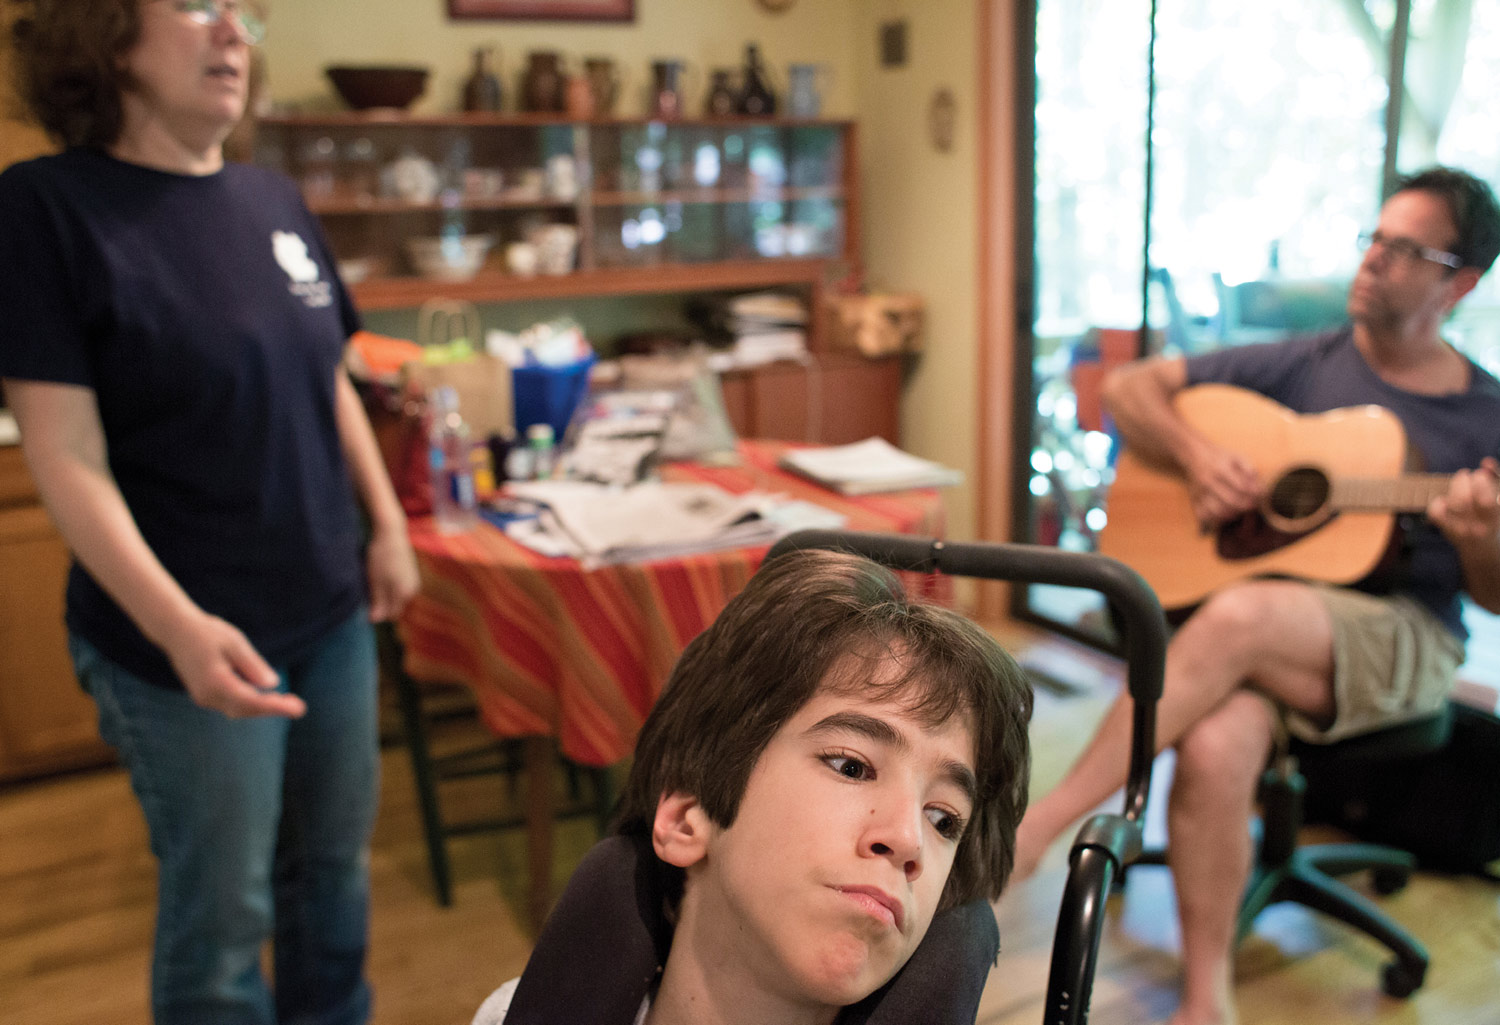 Joe enjoys live music, especially when his father, Jerry (the story's author) plays guitar.